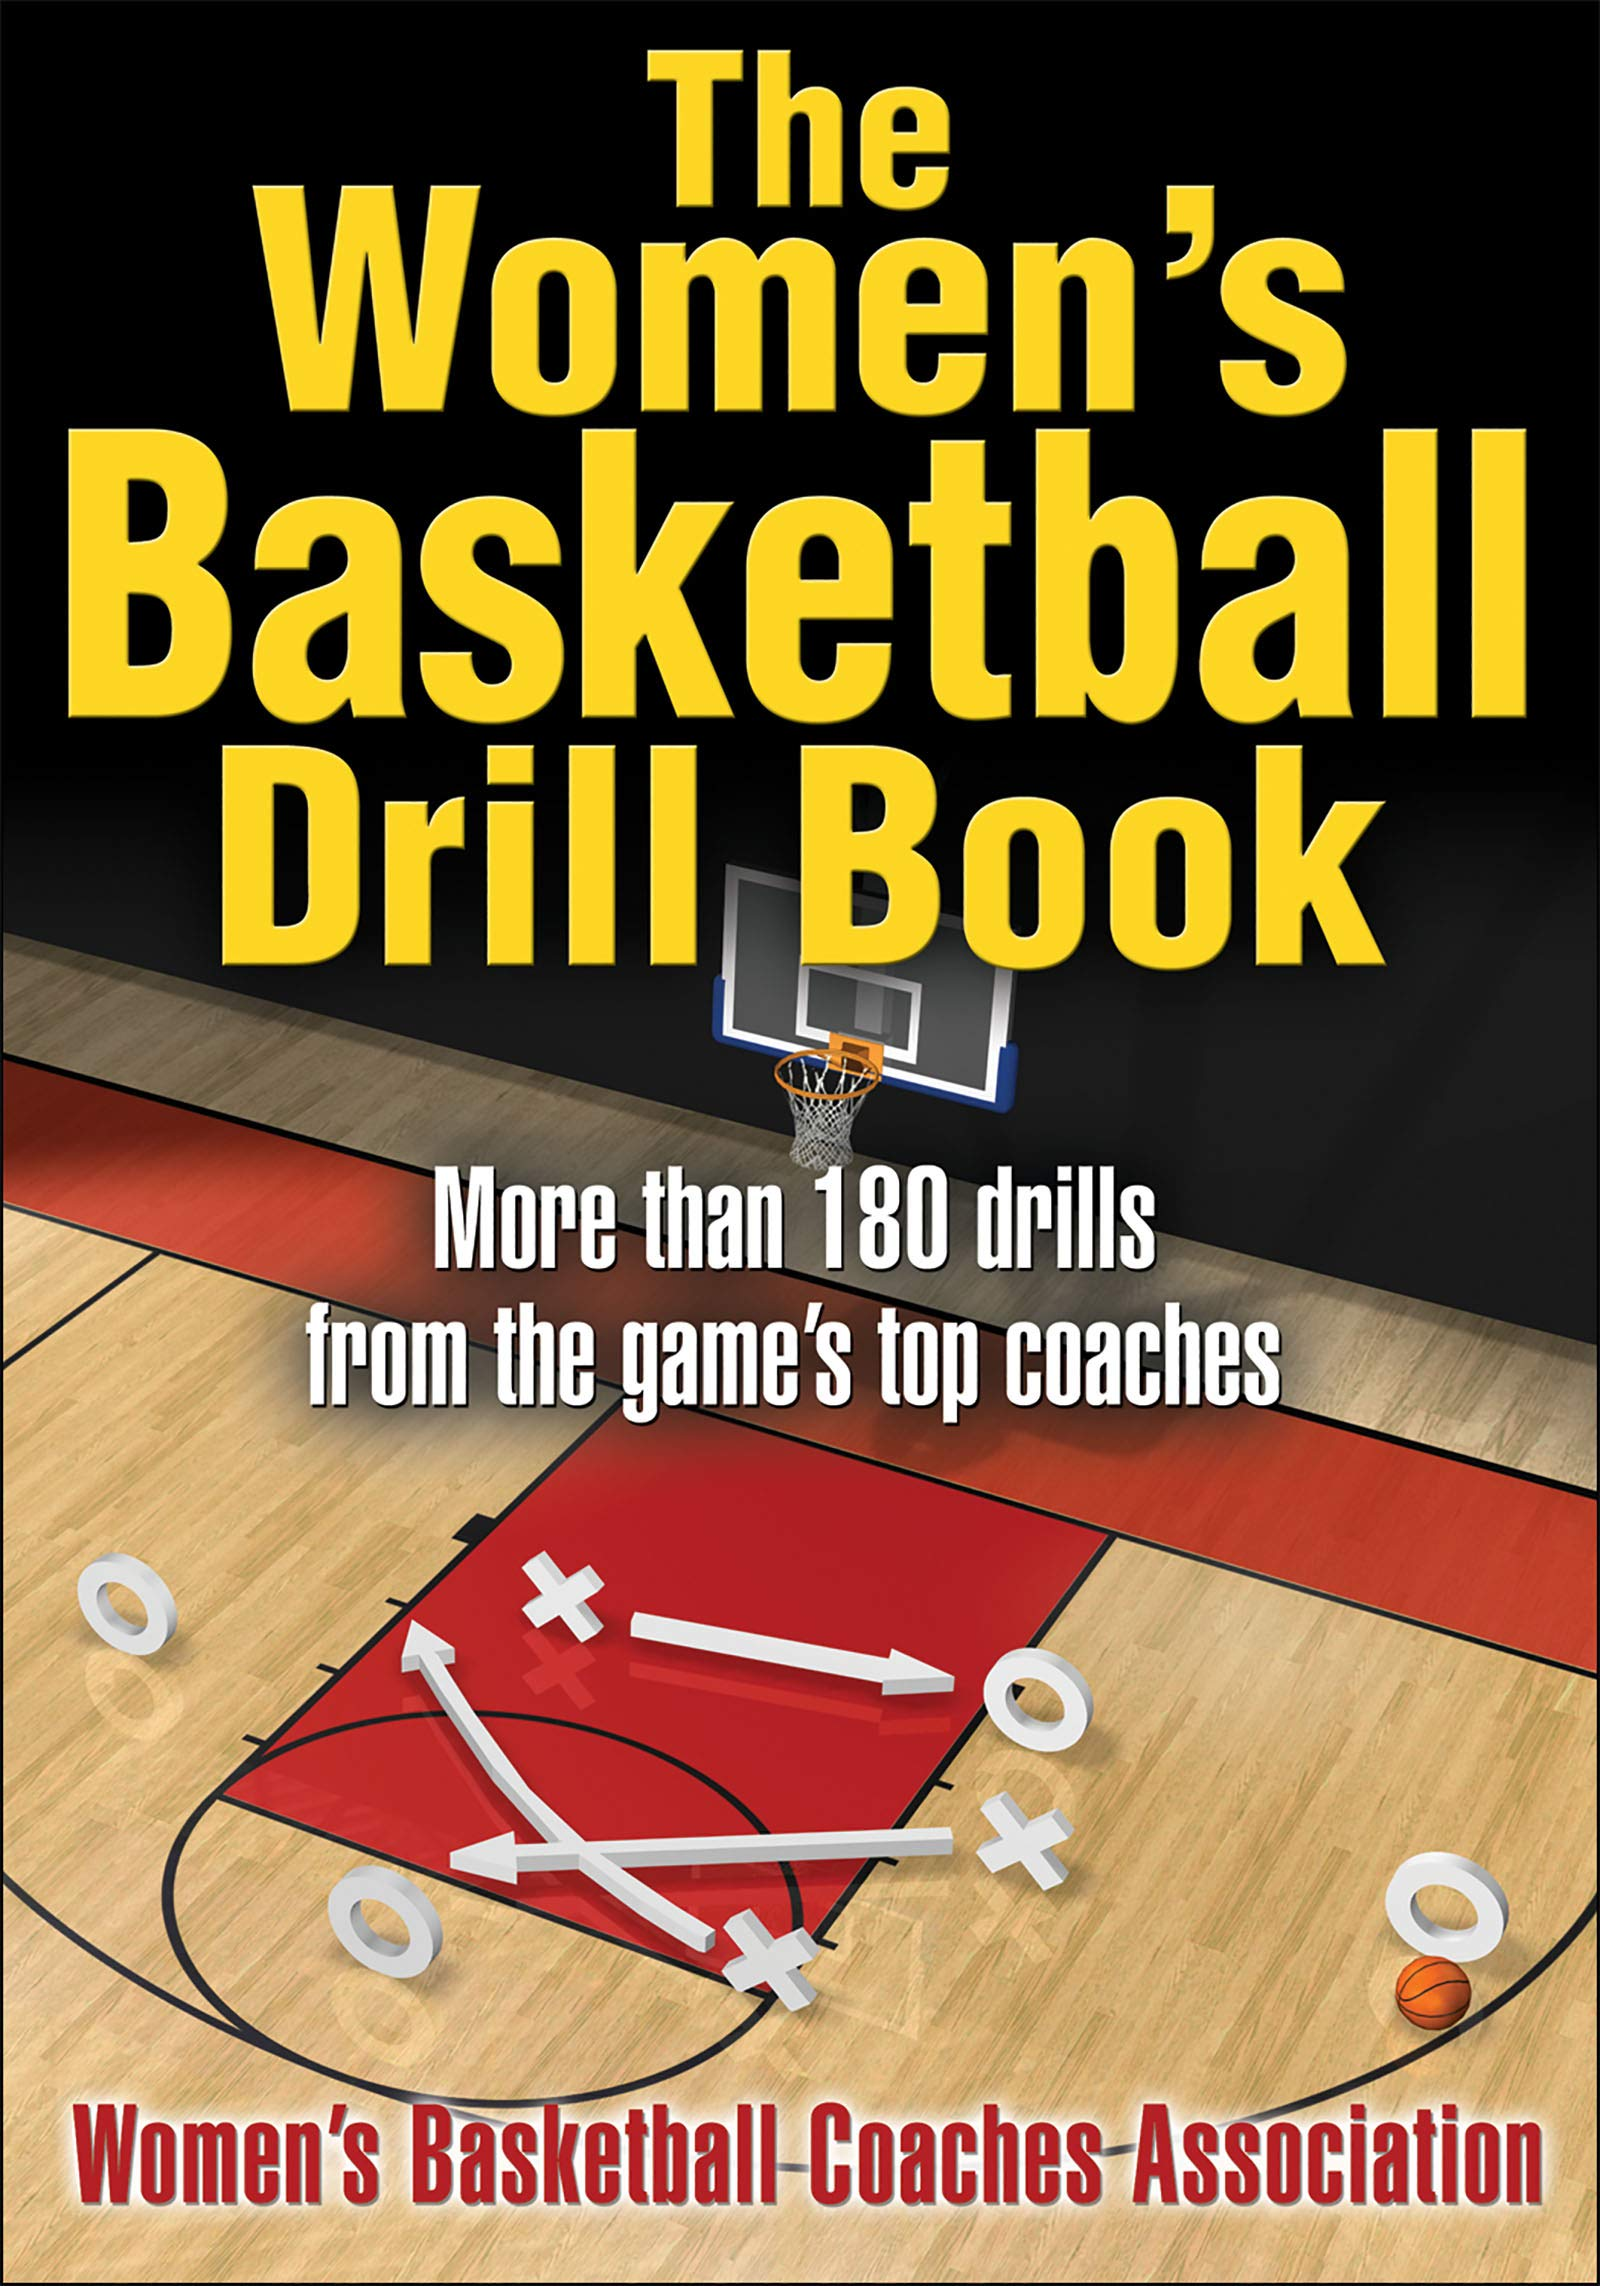 The Women's Basketball Drill Book: Women's Basketball Coaches Association:  9780736068468: Amazon.com: Books